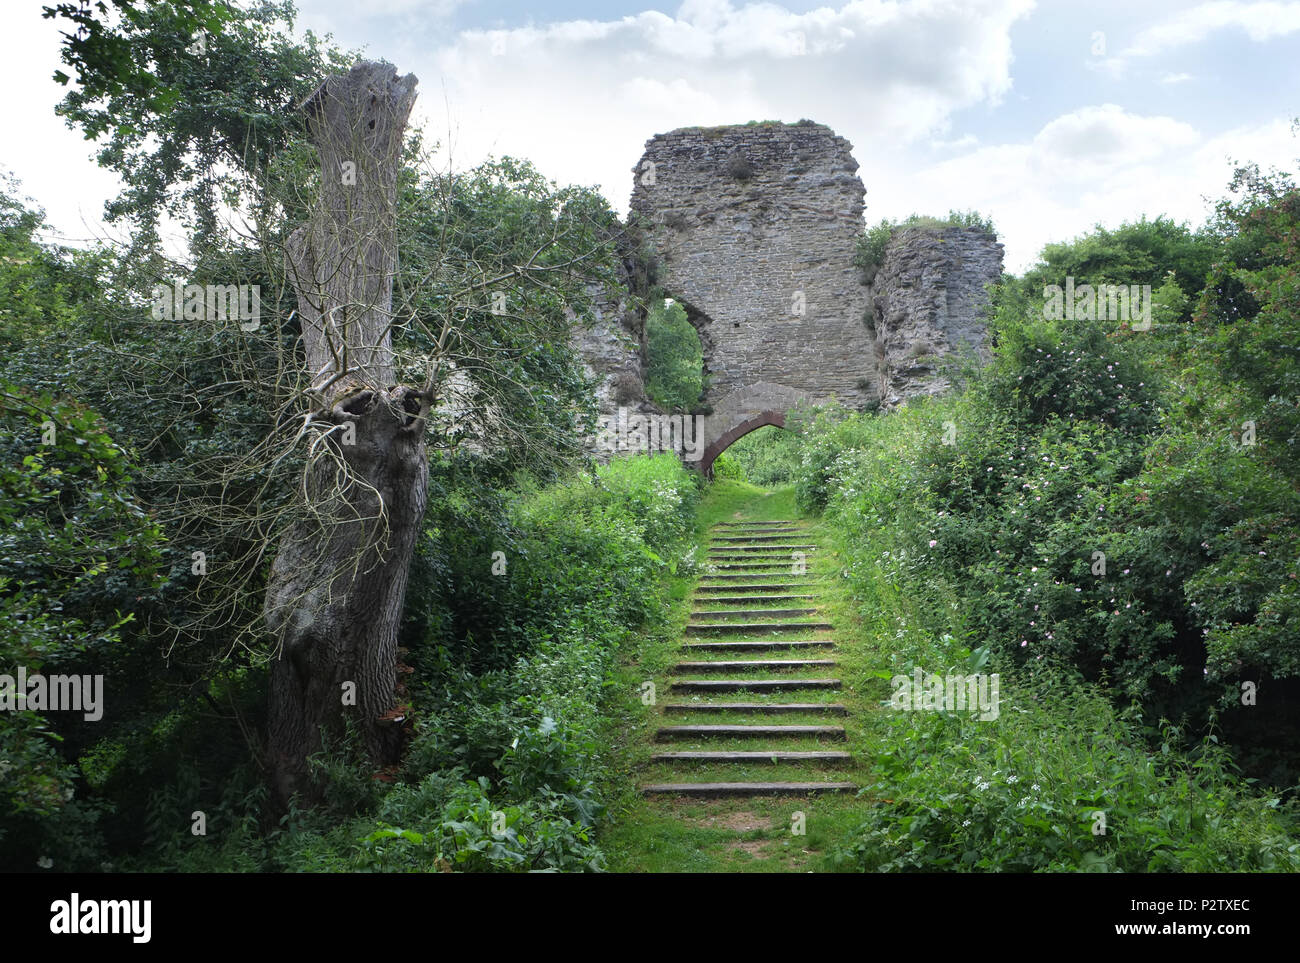 Wigmore Castle, Herefordshire, England - Stock Image